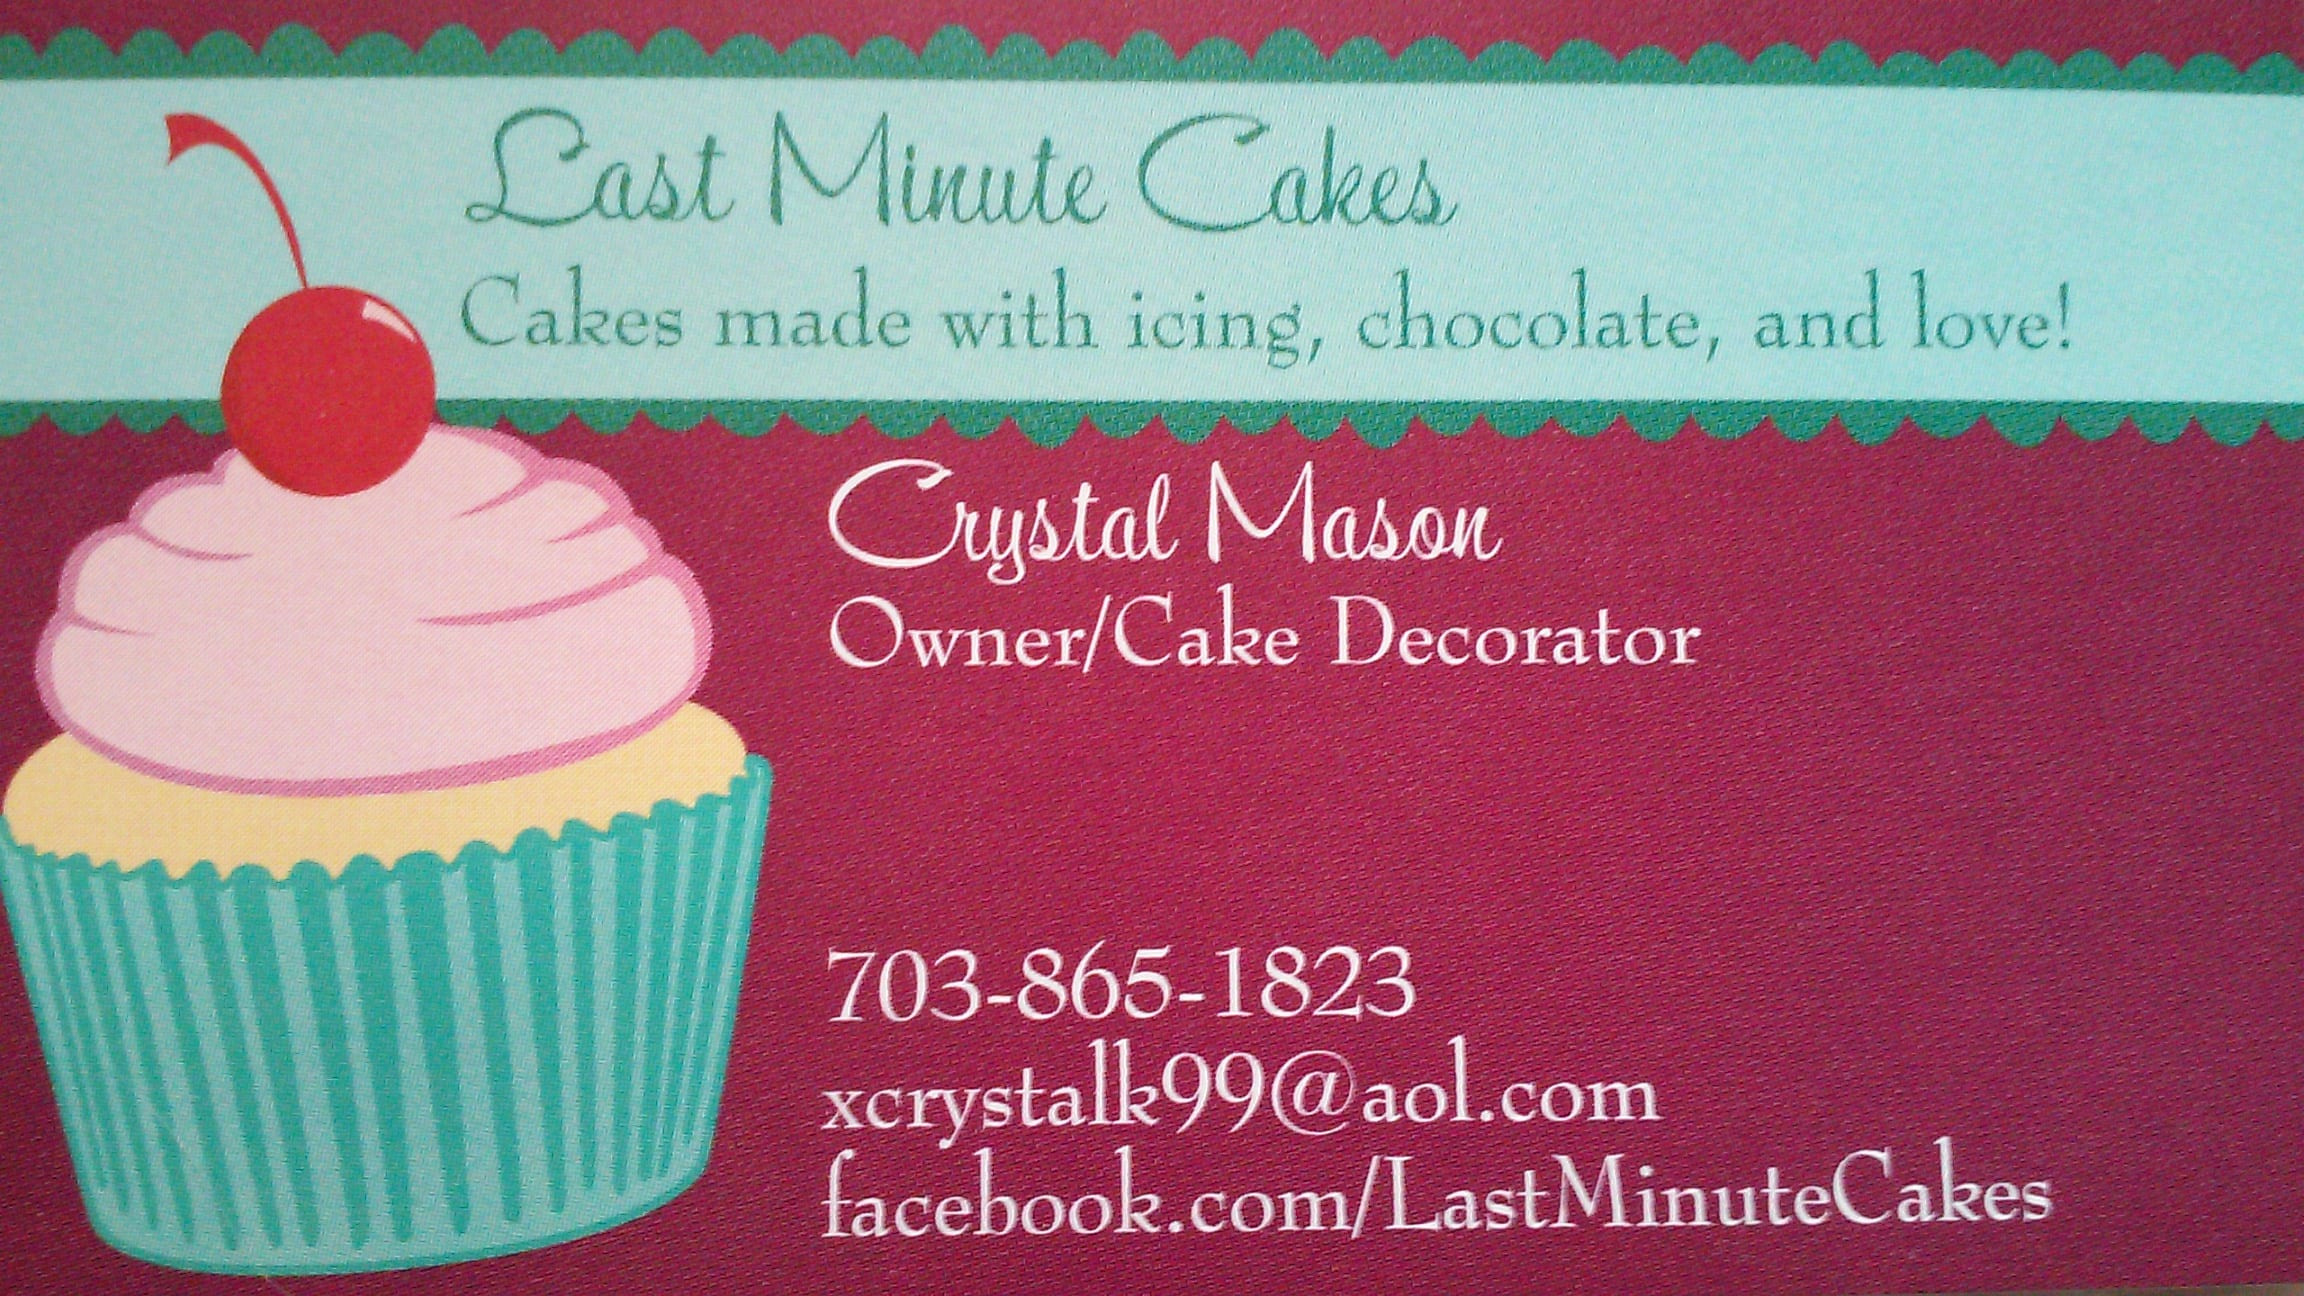 Last Minute Cakes Business Card A Forever Home Rescue Foundation